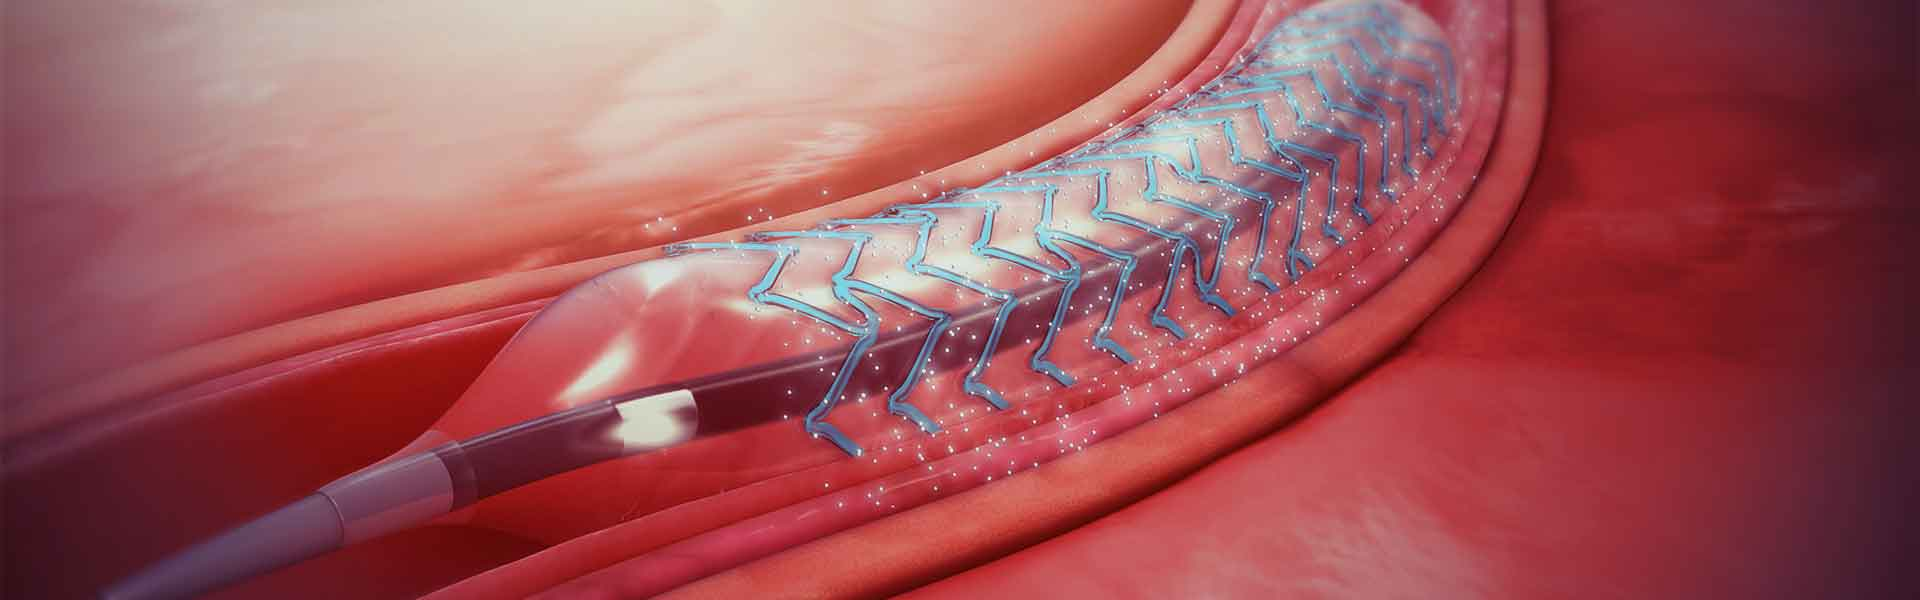 What Is A Better Option For Angioplasty? A Bare Metal Stent Or A Drug Eluded Stent?